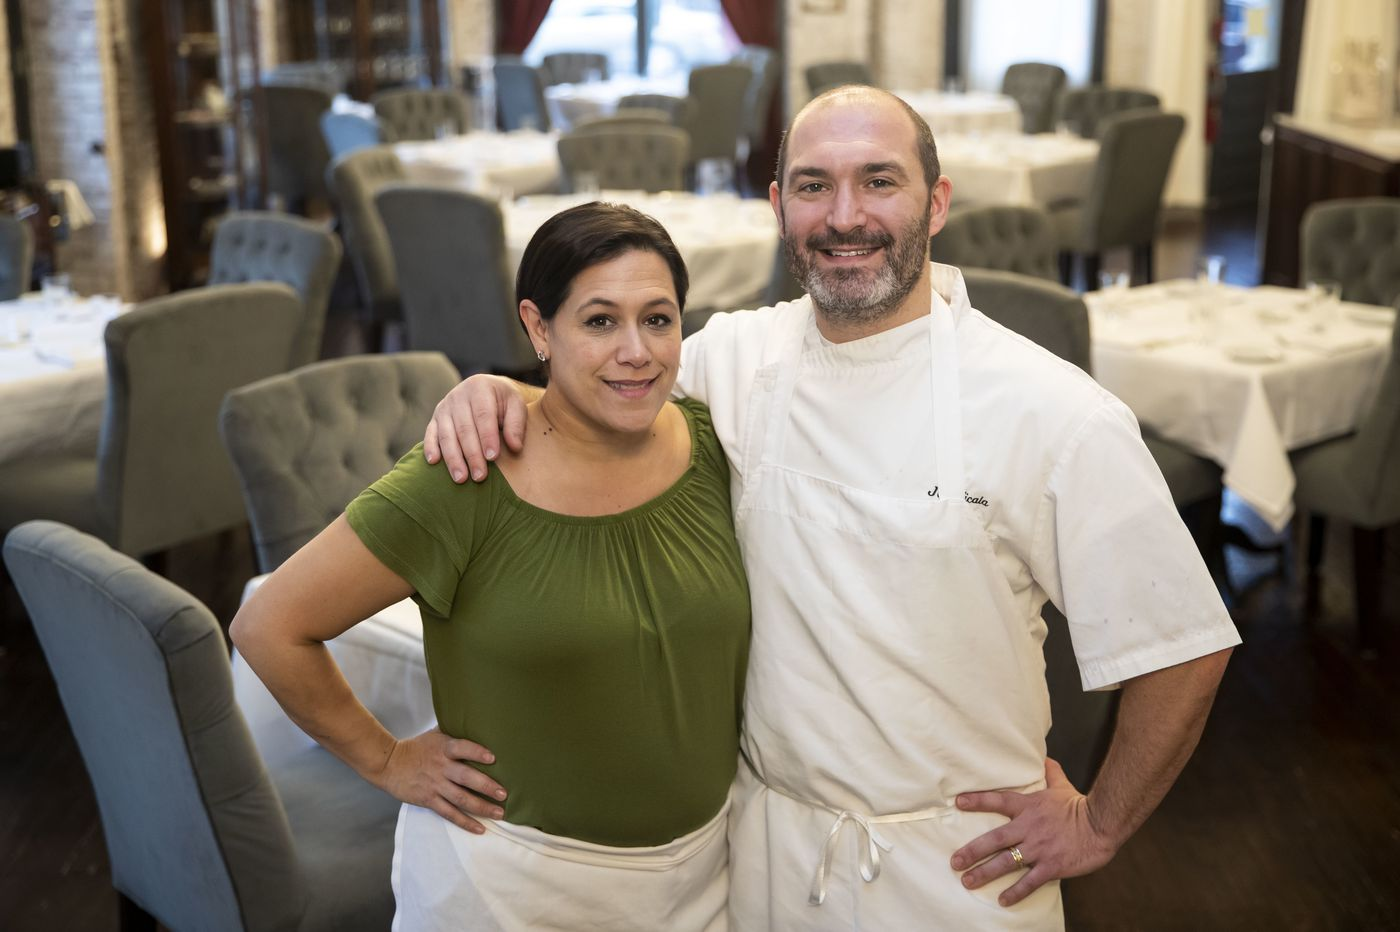 North Broad's Cicala, in the chef-owner couple's own words